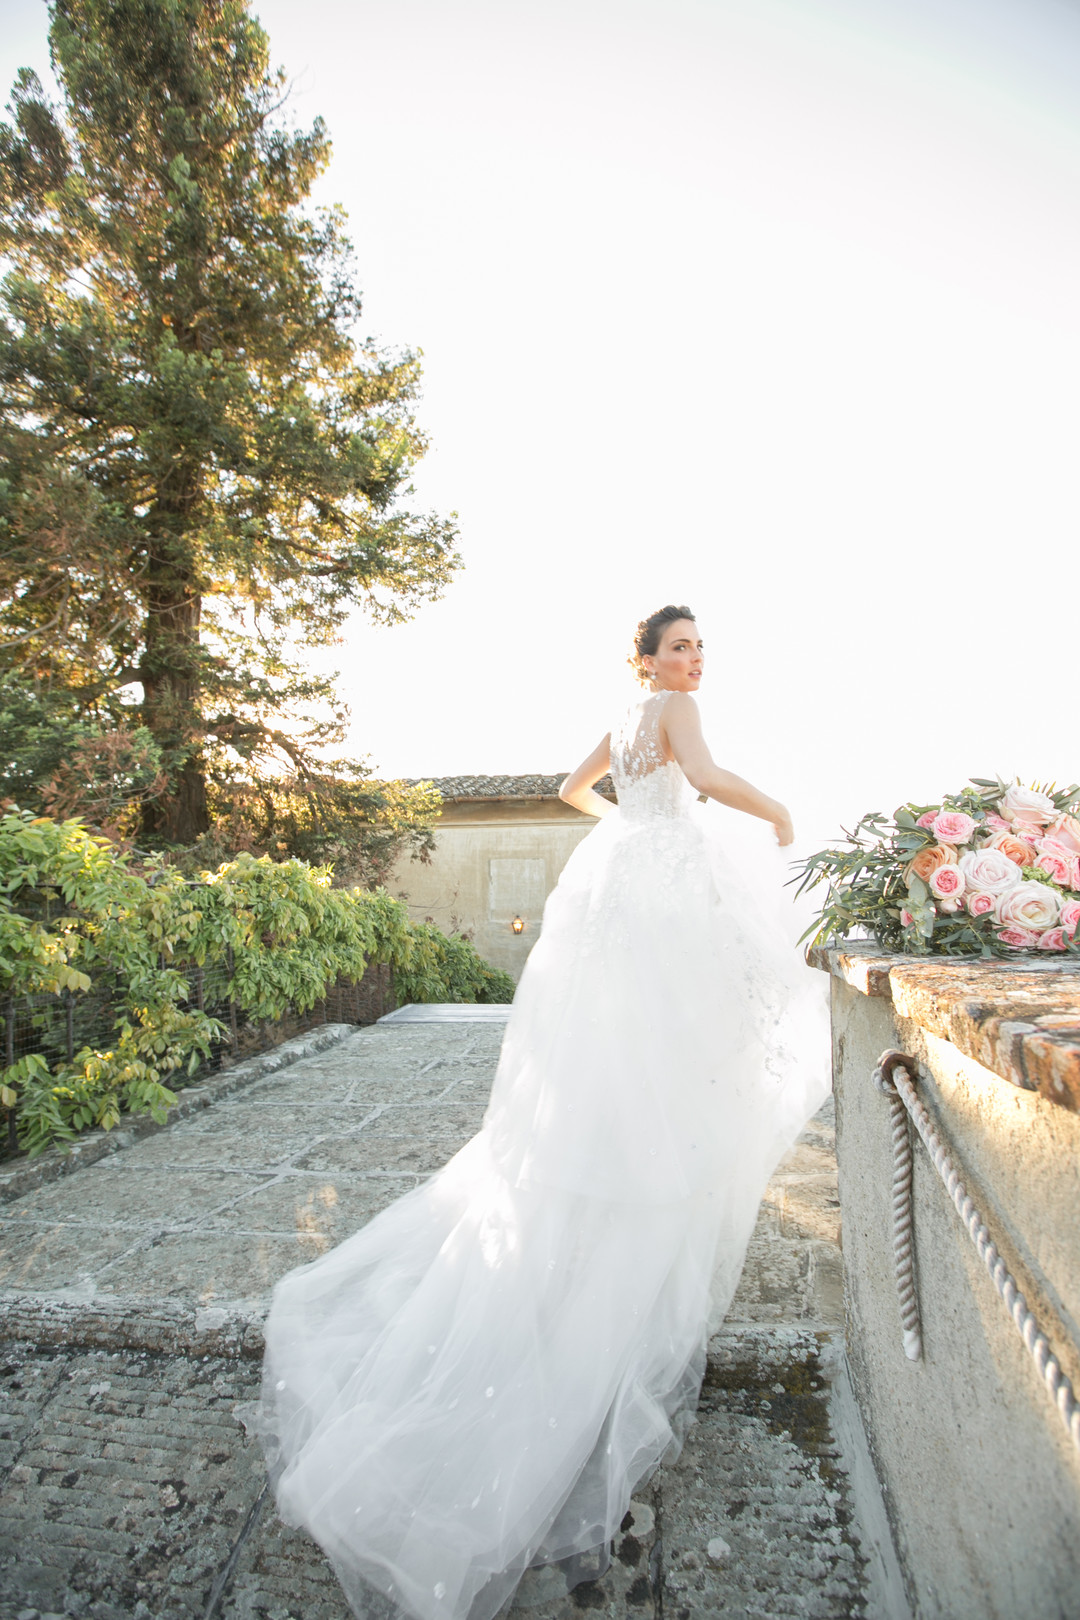 amsale wedding dress in Tuscany